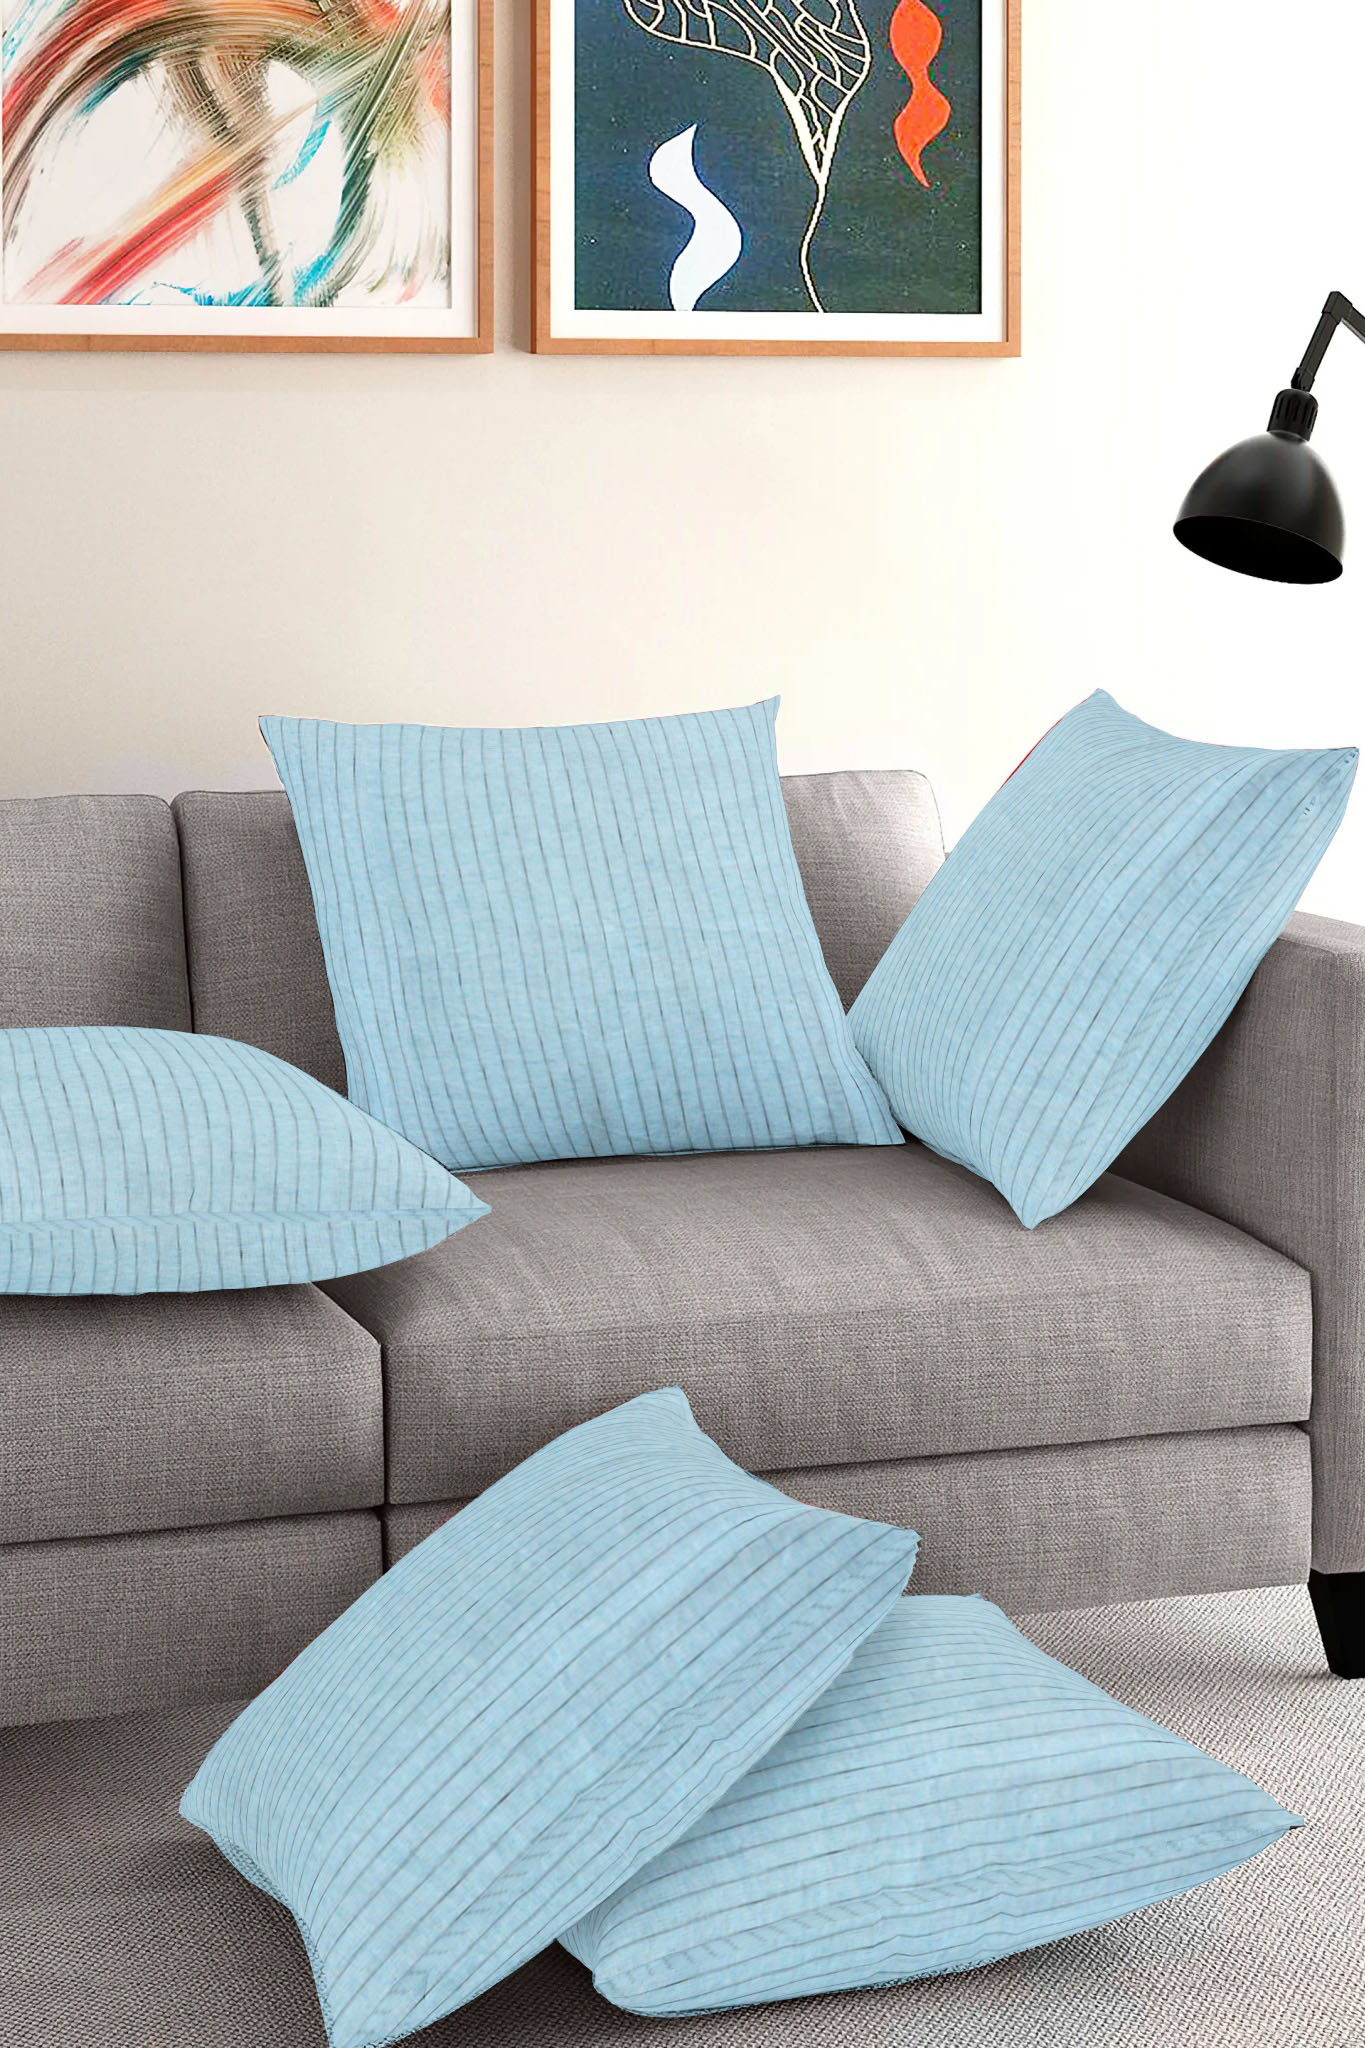 Set of 5-Cyan Blue Cotton Cushion Cover-35390-16x16 Inches